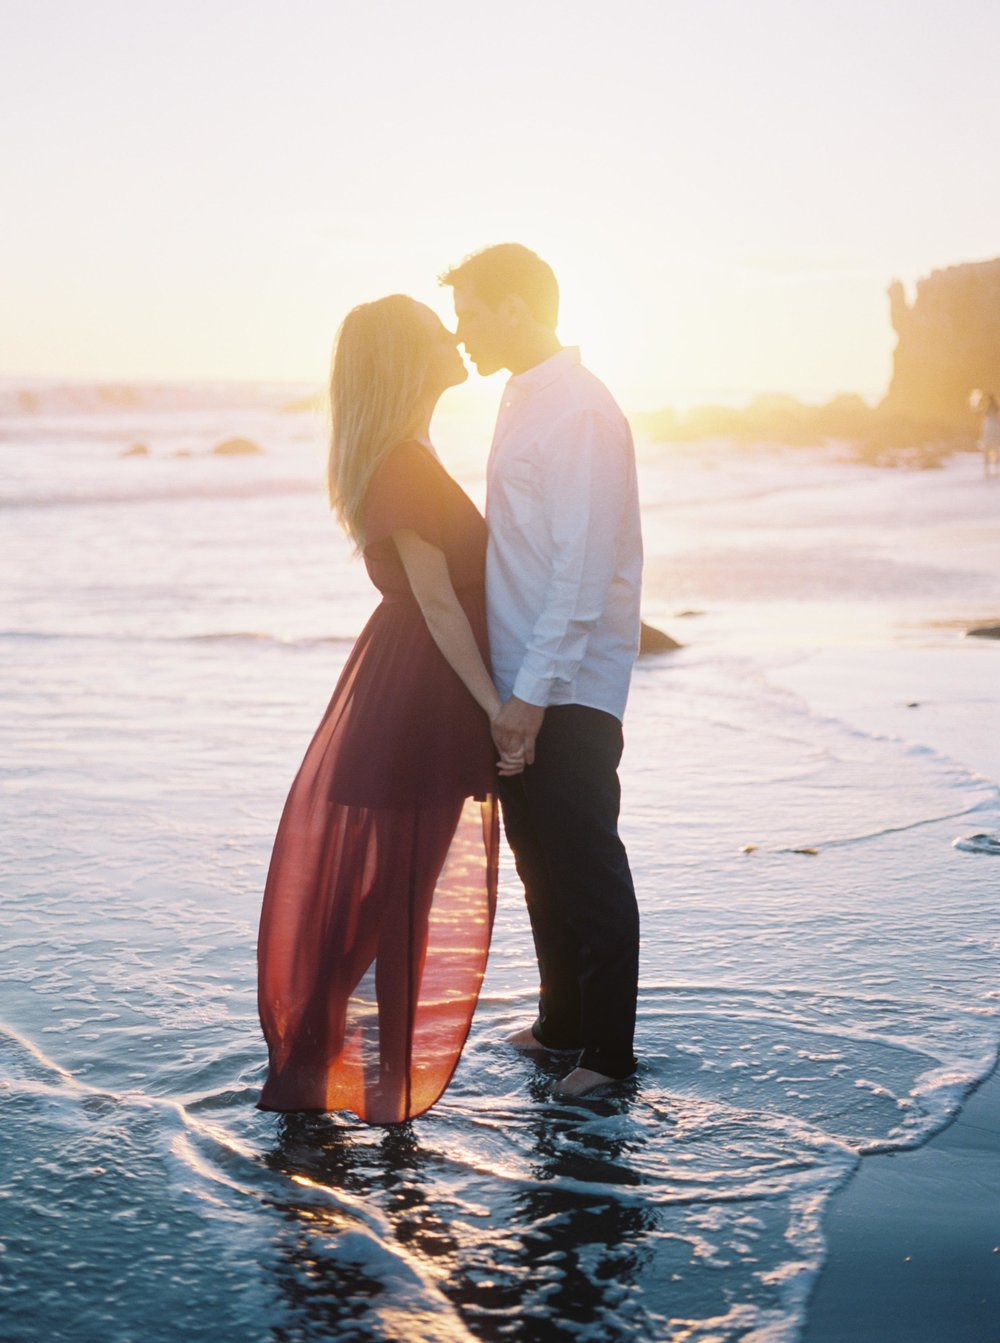 ELMATADOR_FUJI400H_MALIBU_LOSANGELES_PHOTOGRAPHER_WEDDING_ENGAGEMENT_STYLEMEPRETTY_FILM_BEACH_SOCAL_KATELROSEPHOTOGRAPHY_017.jpg